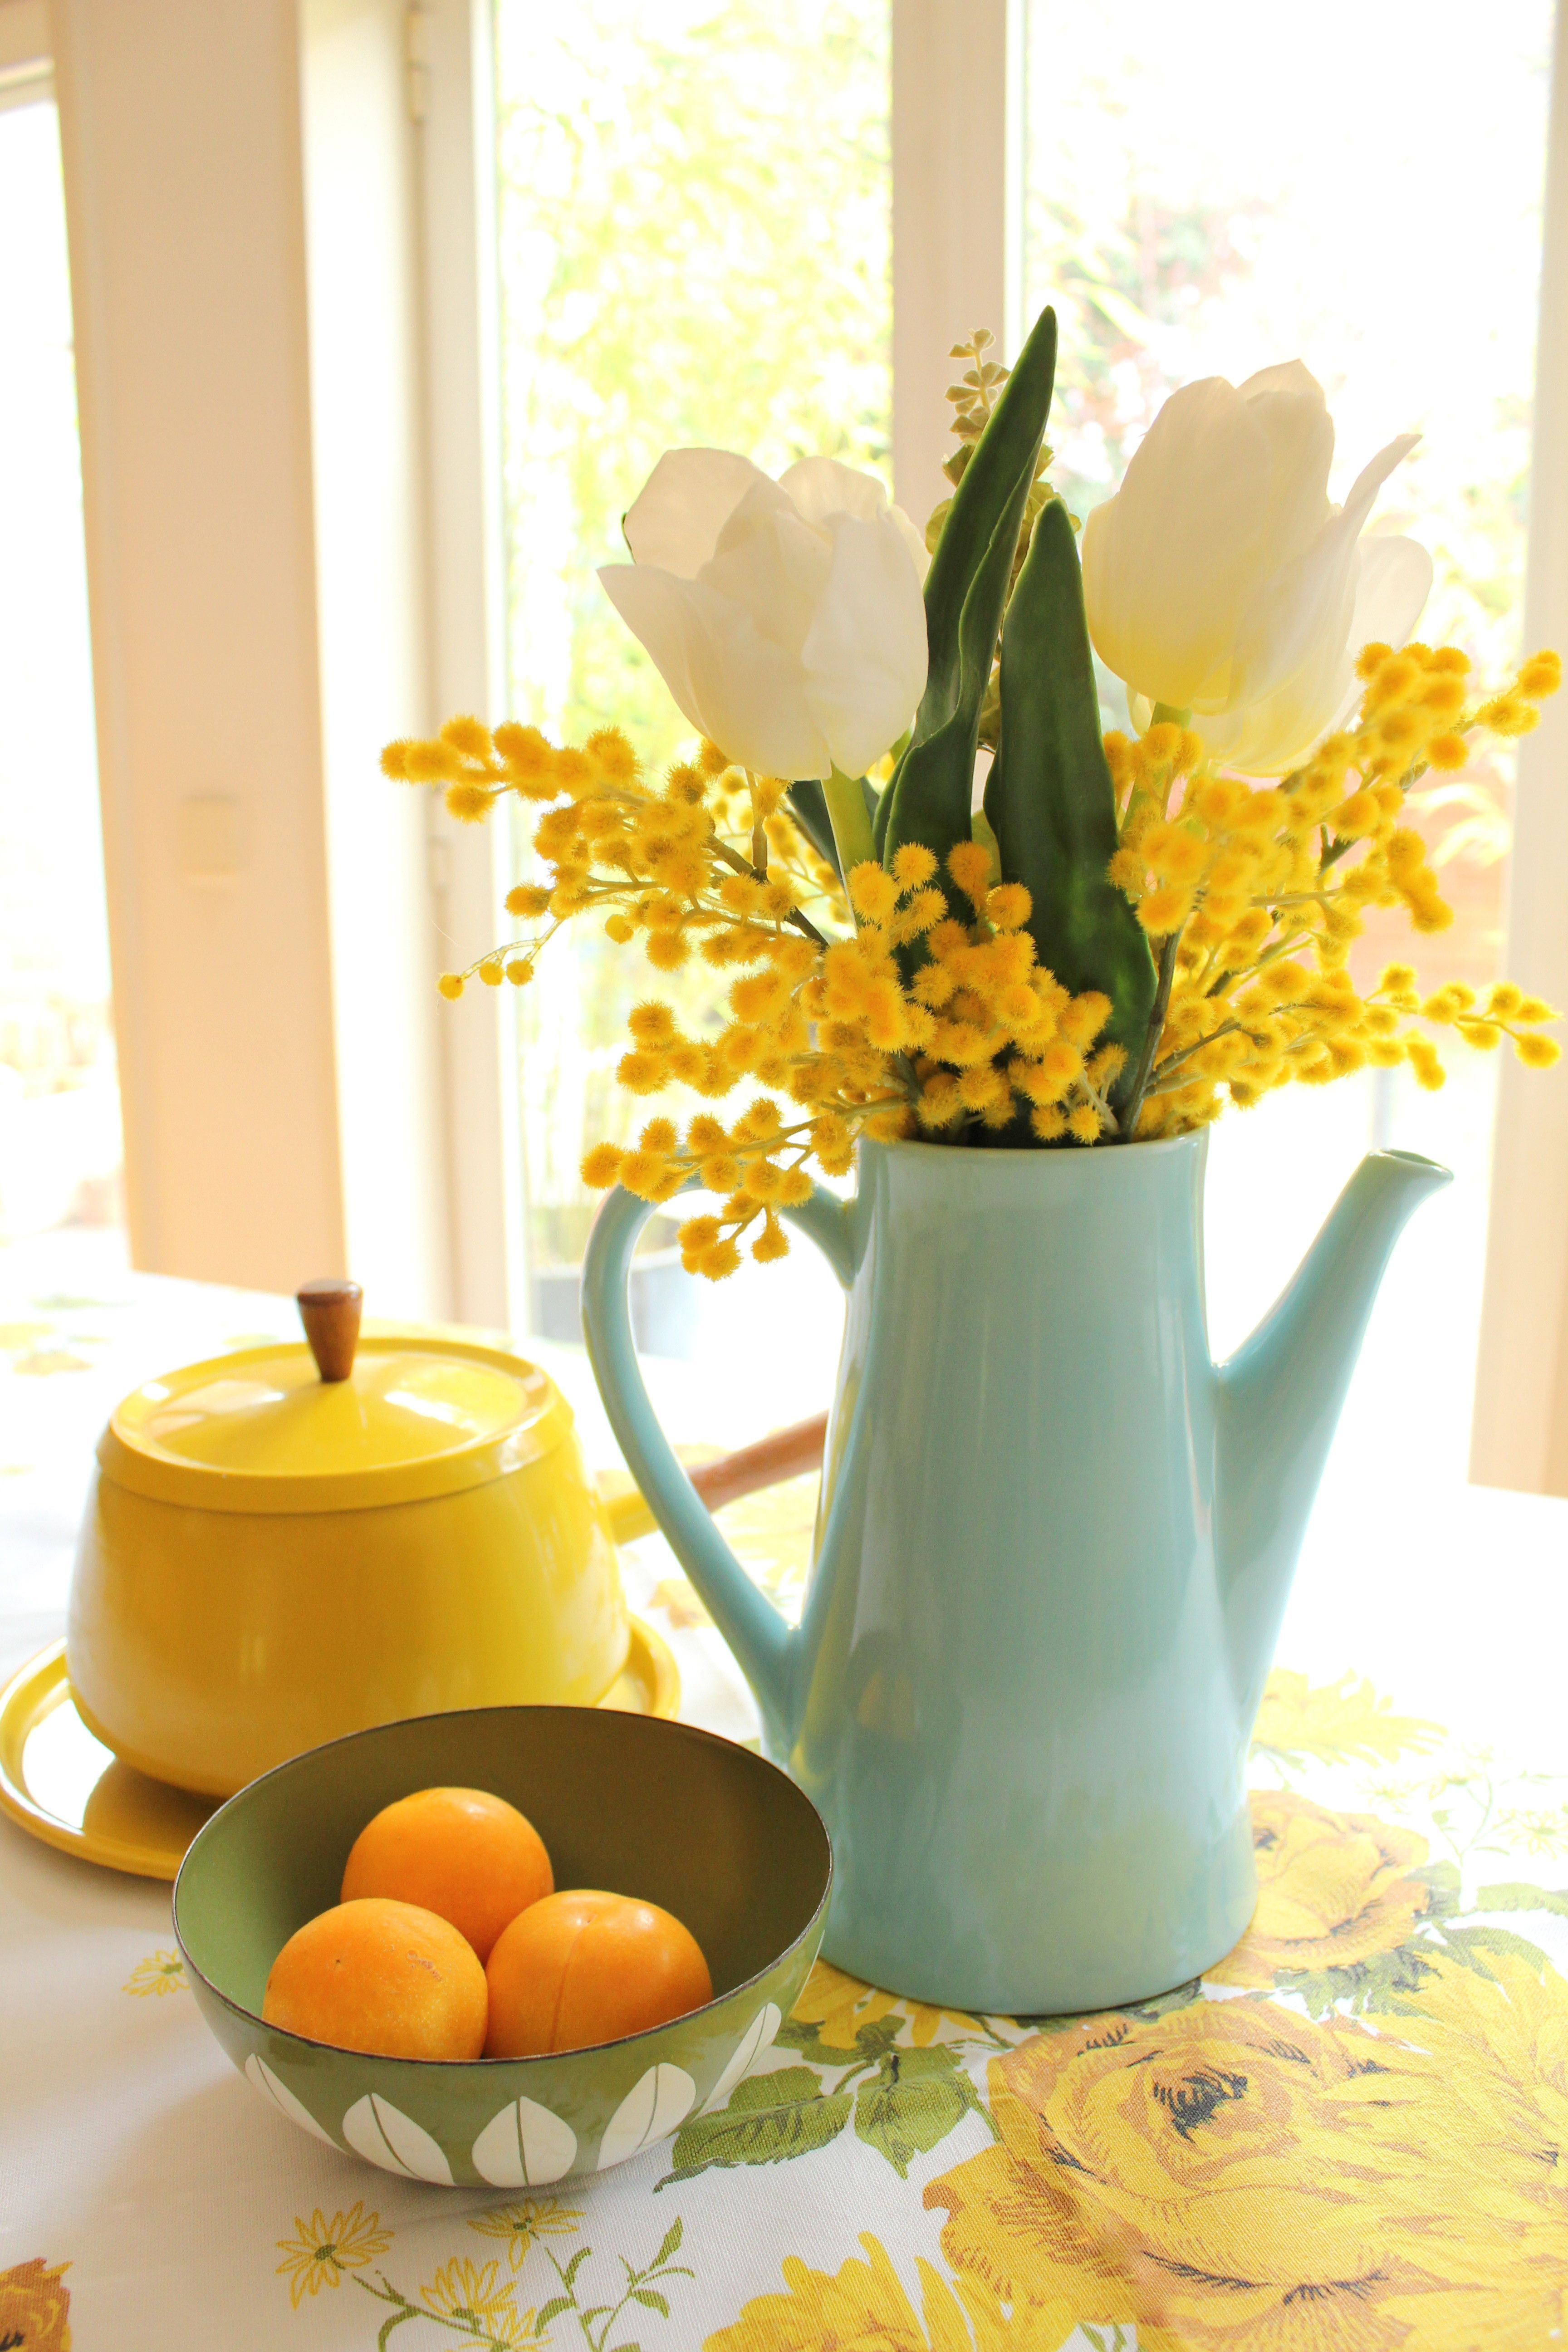 Colorful Kitchen Supplies: Yellow Kitchen Decor To Brighten Your Cooking Space